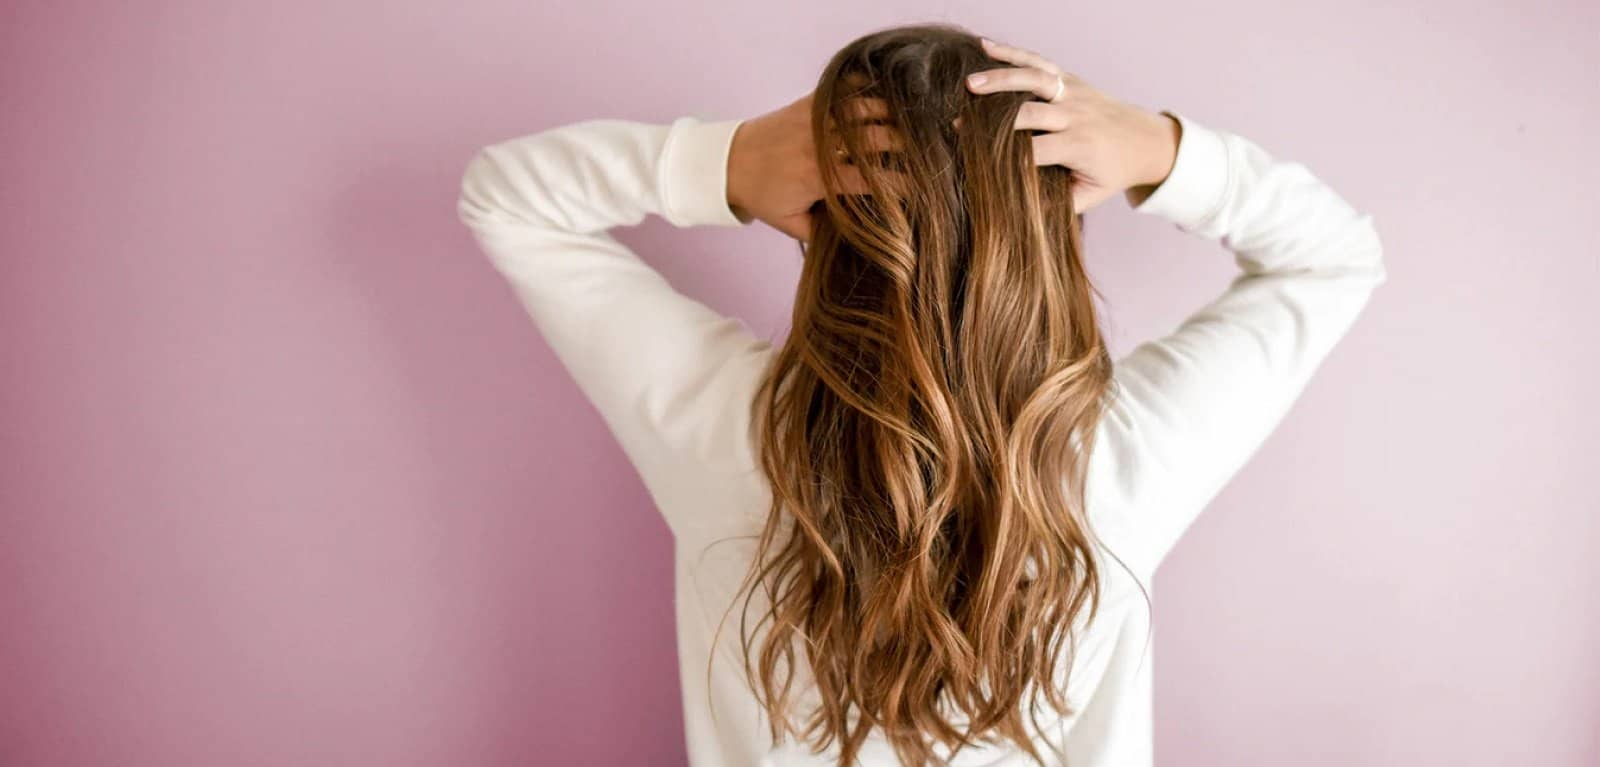 - How to maintain healthy hair: 7 hacks you have been missing out on - COSMO® Beauty Salon June 2021